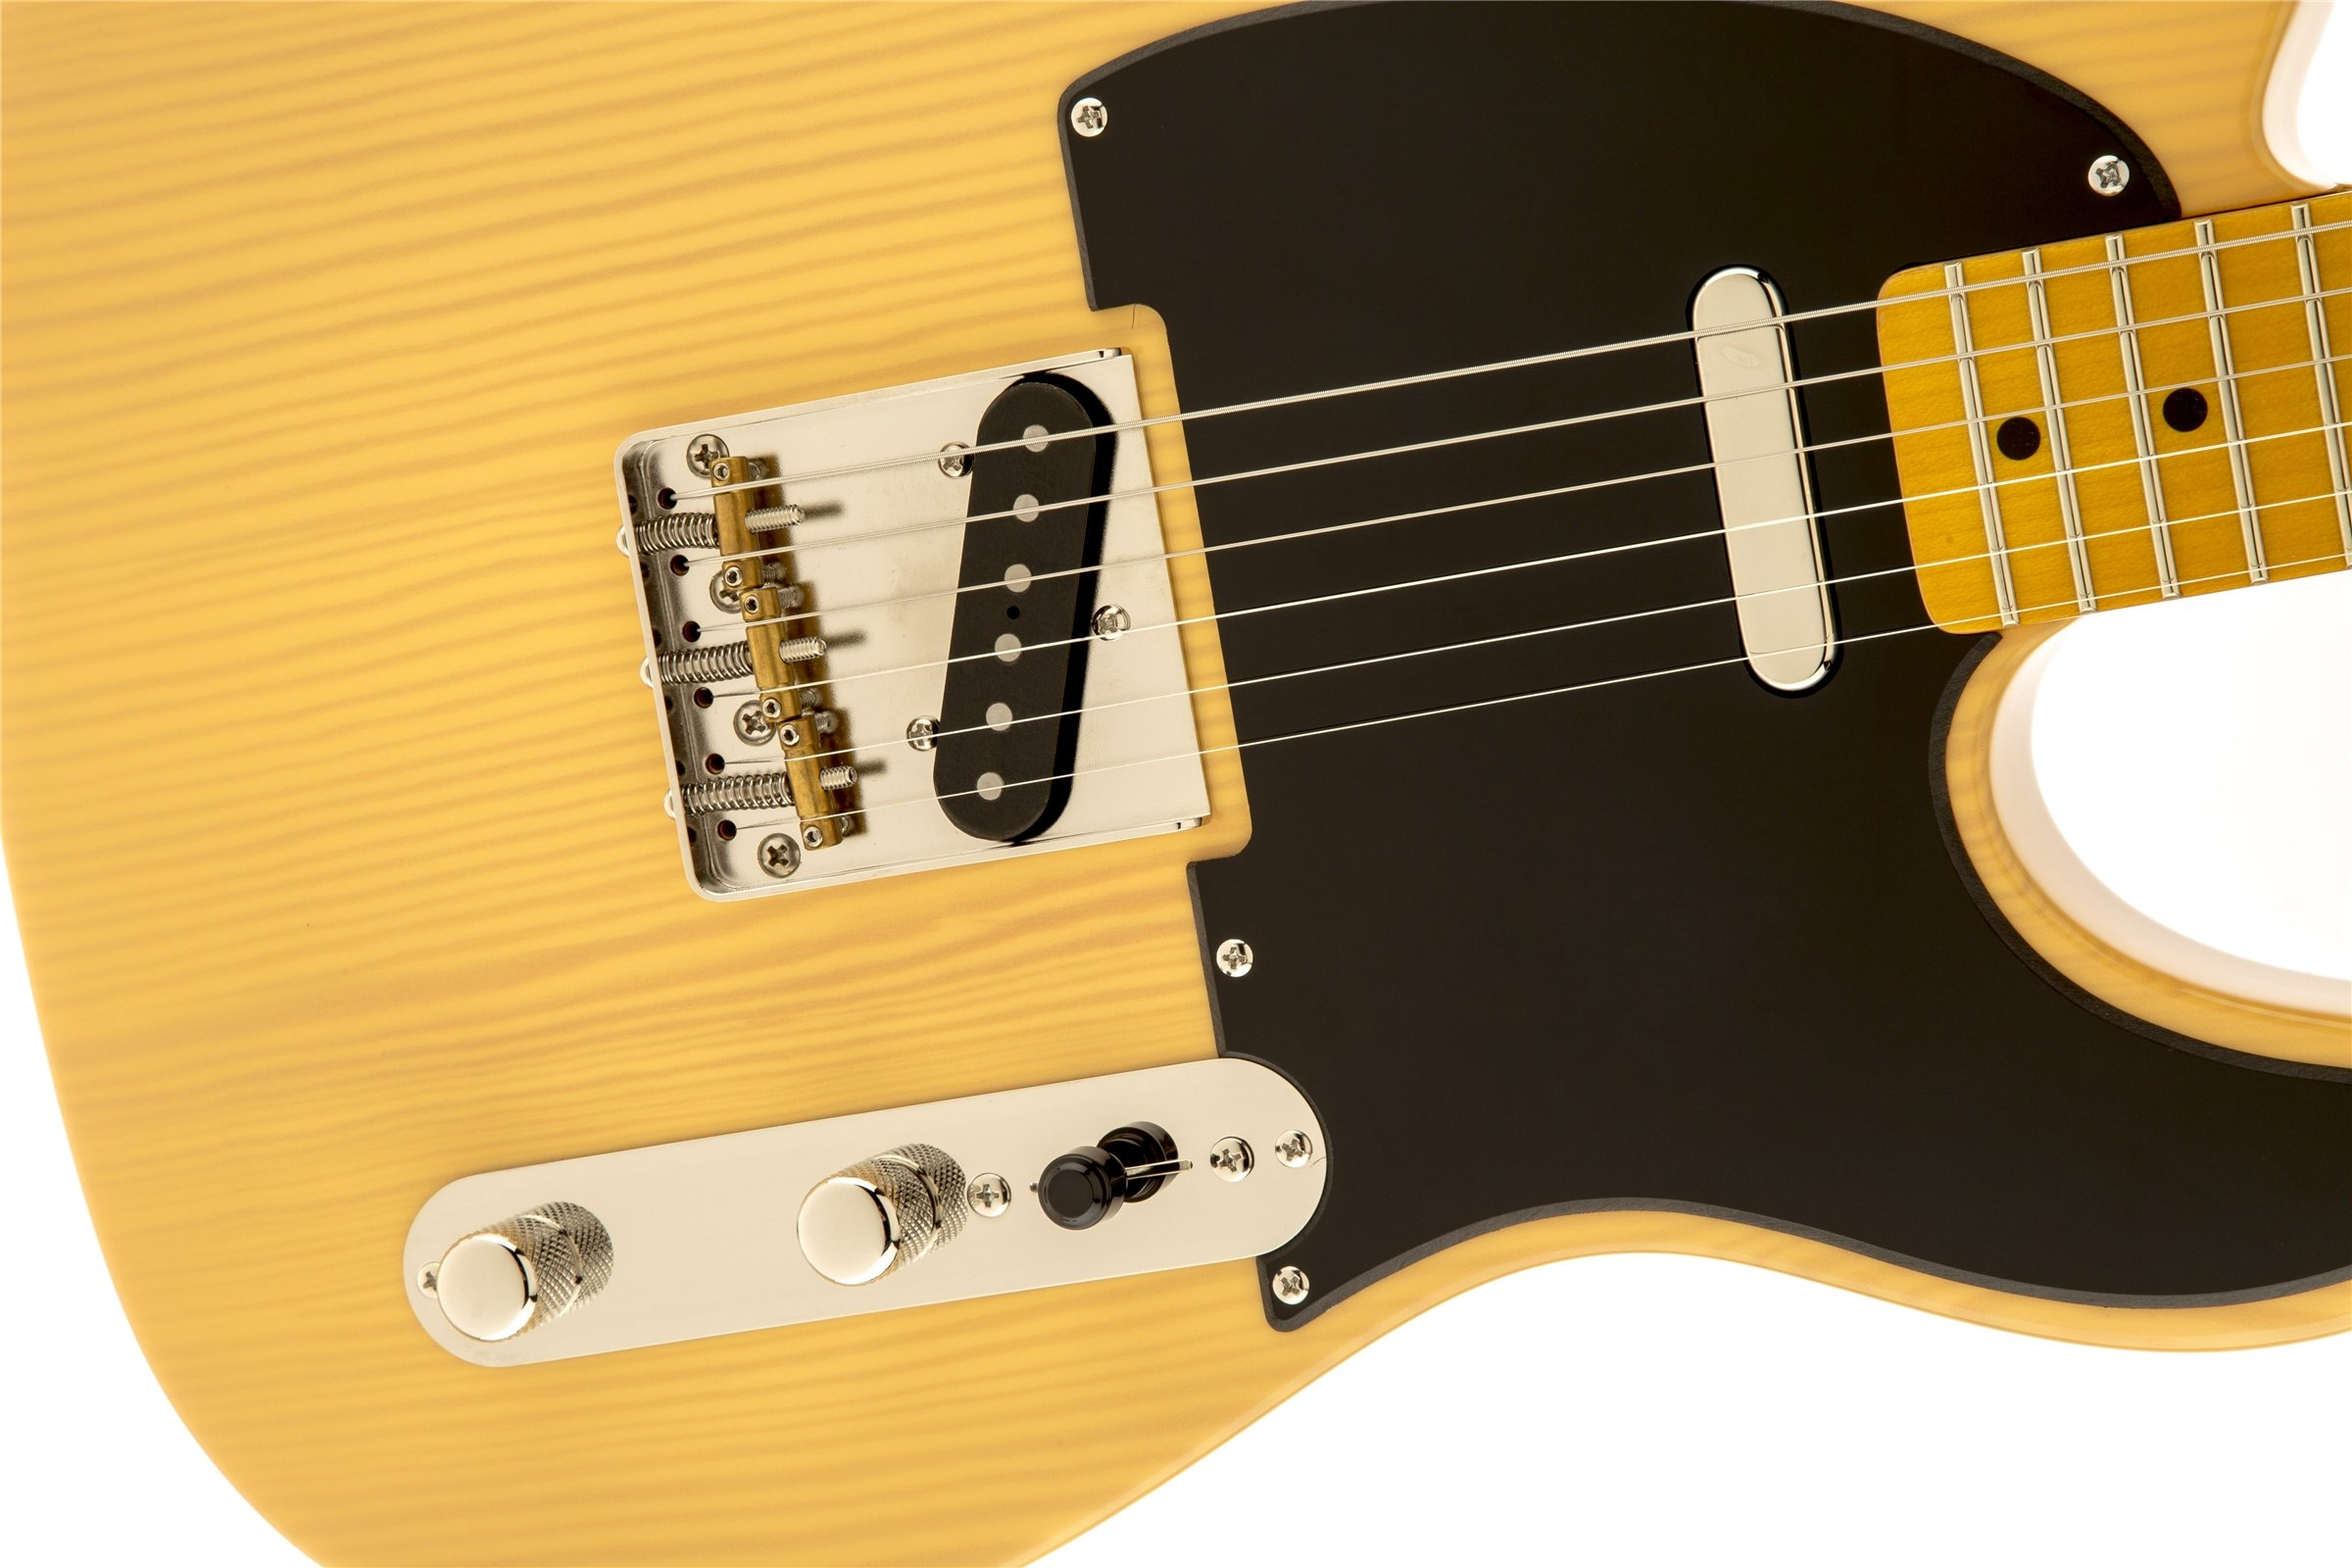 Squier by Fender 50's Telecaster - Maple - Butterscotch Blonde